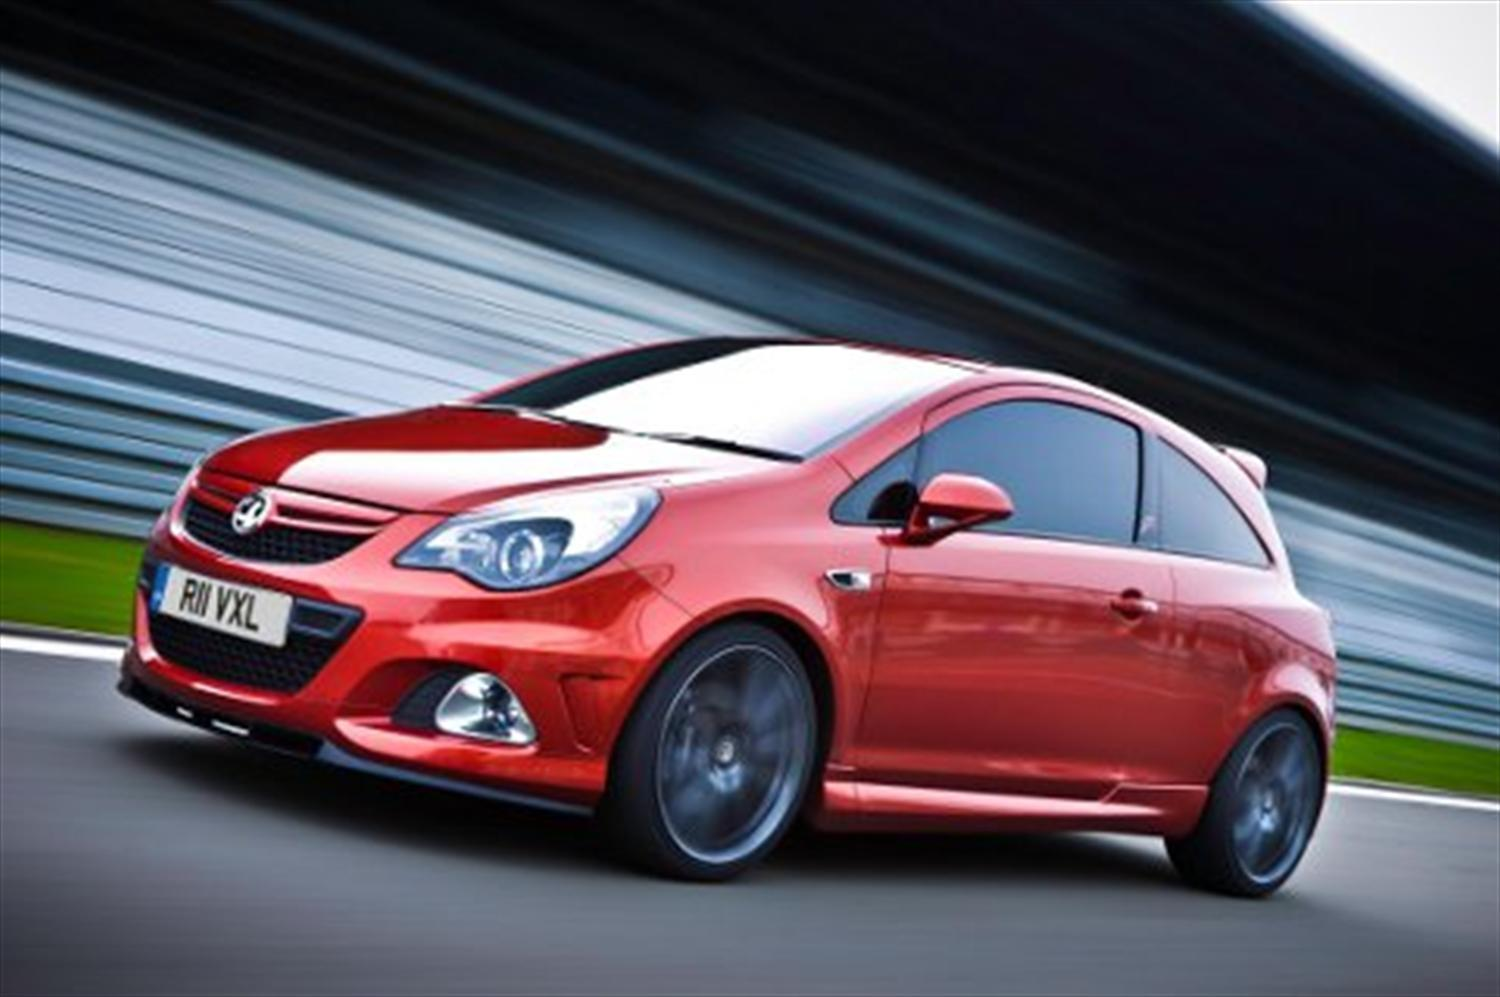 New Vauxhall Corsa VXR Nurburgring Edition Arrives in UK